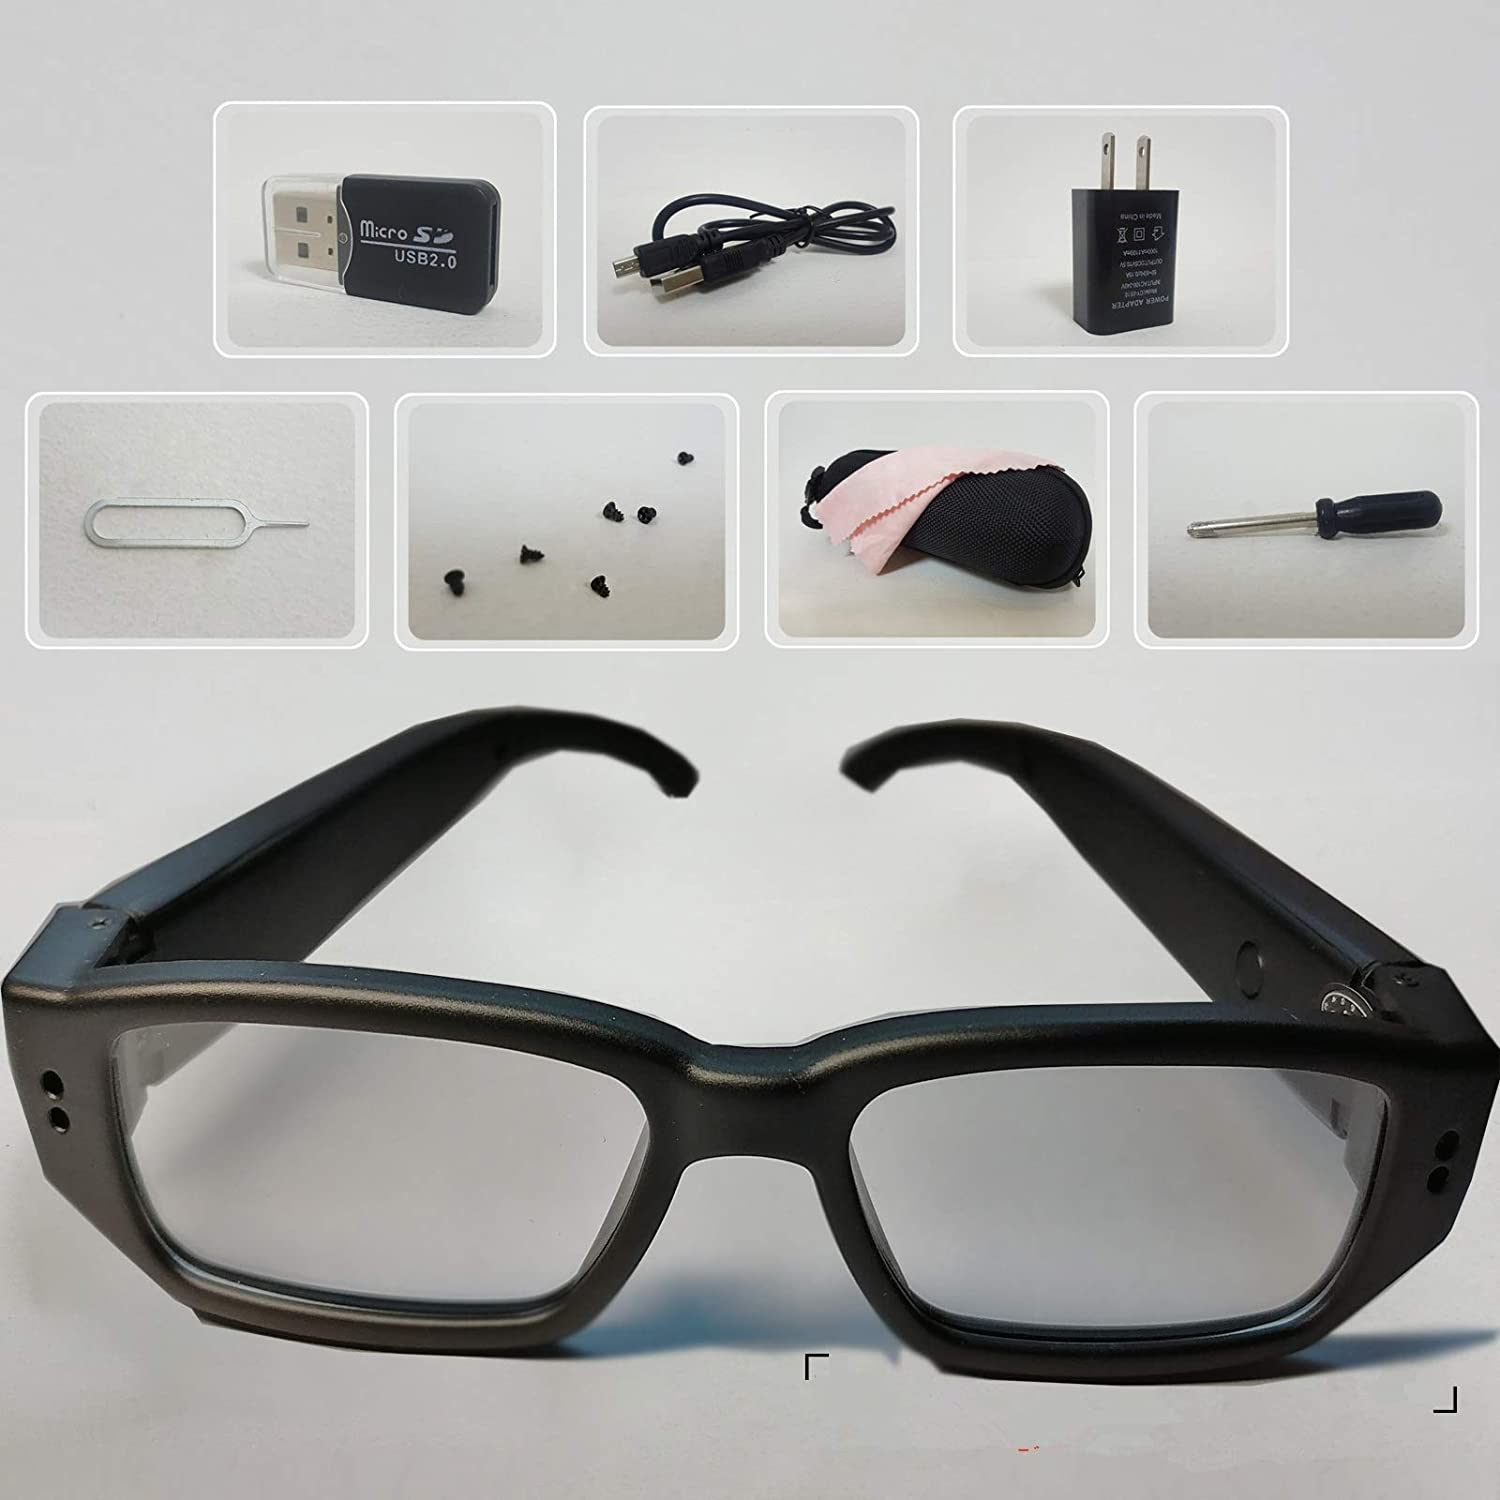 2019 Spy Glasses Hidden Camera Included 32GB for 60-80 Minutes Videos